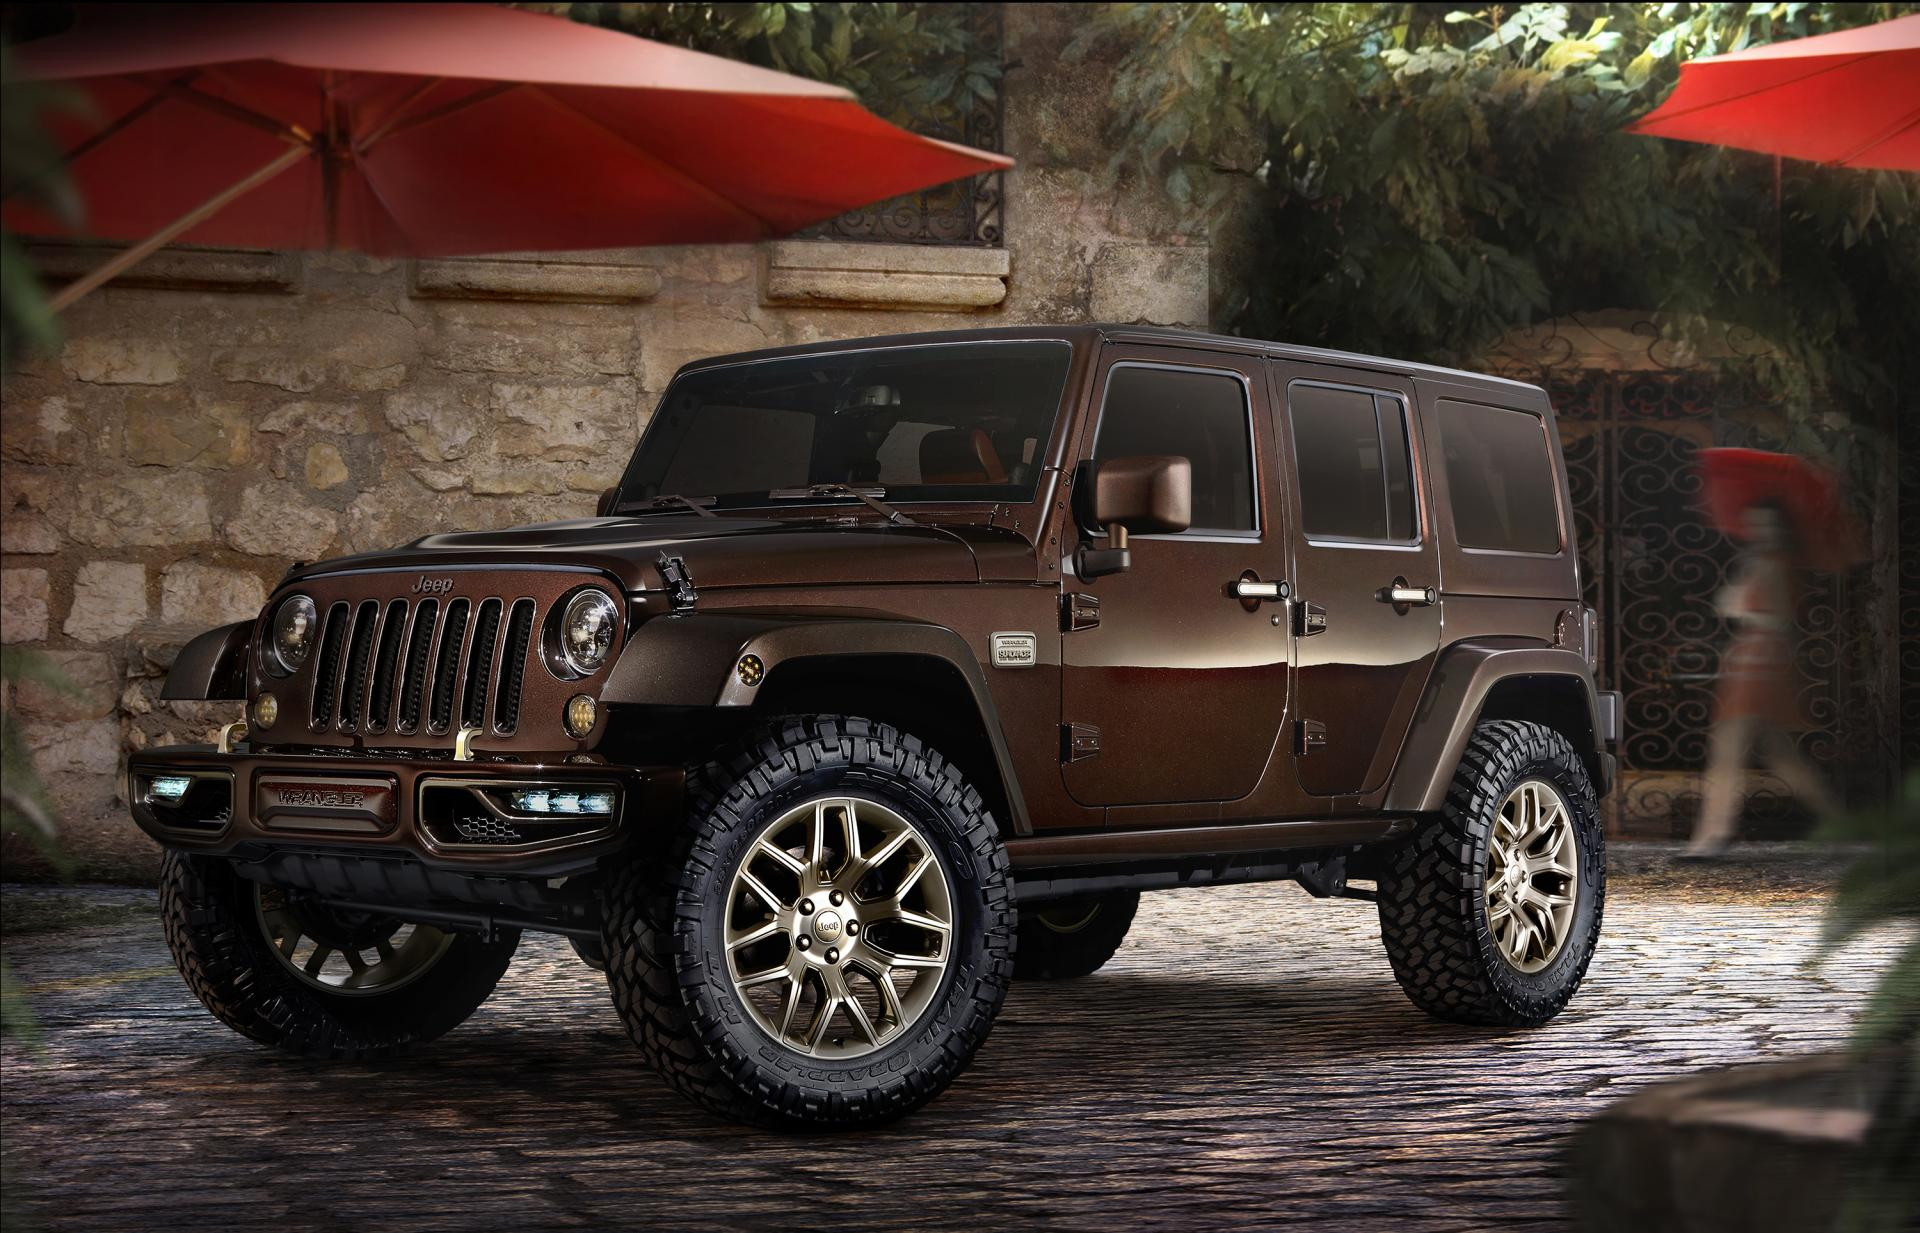 2014 jeep wrangler sundancer design concept news and information. Black Bedroom Furniture Sets. Home Design Ideas